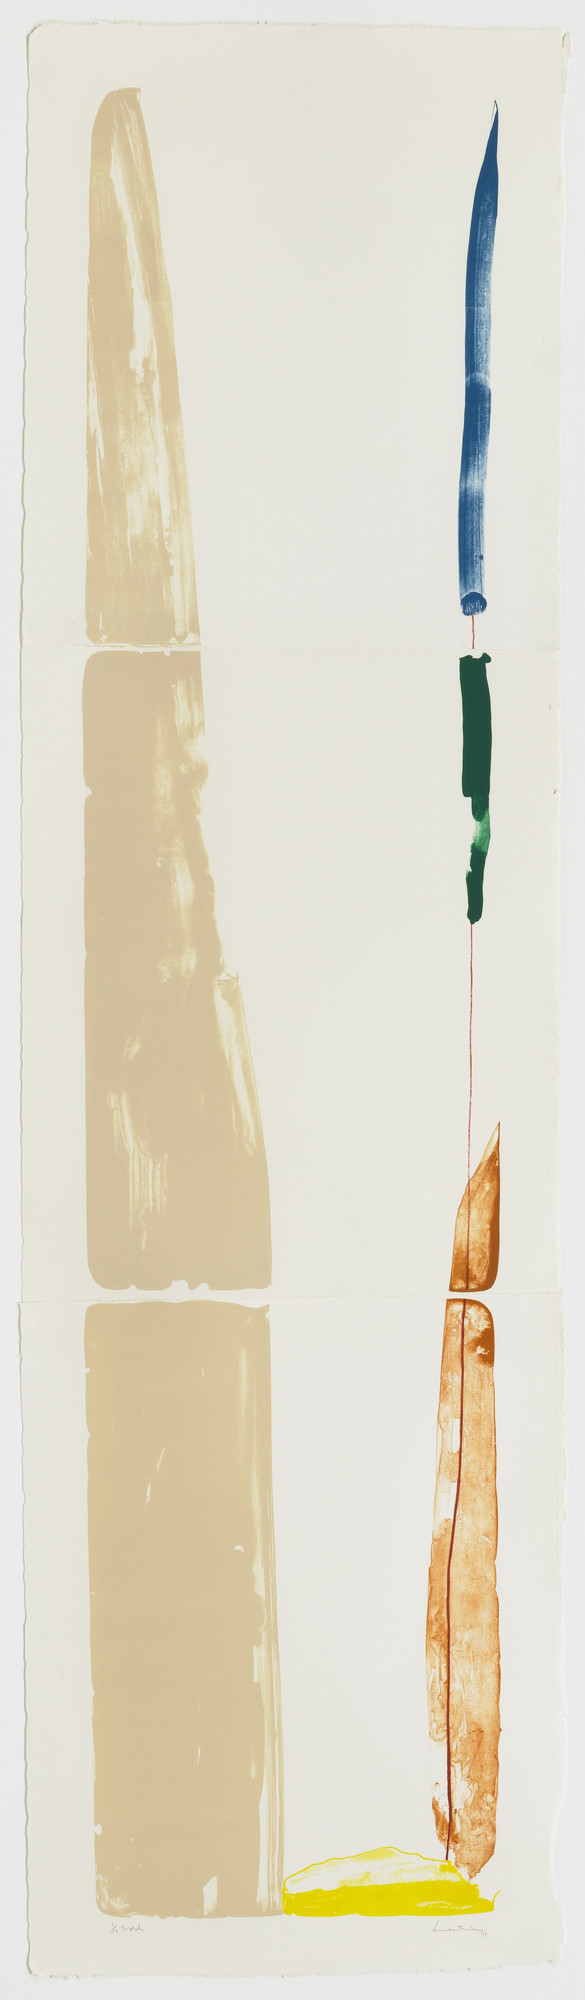 Helen Frankenthaler. Lot's Wife. 1971